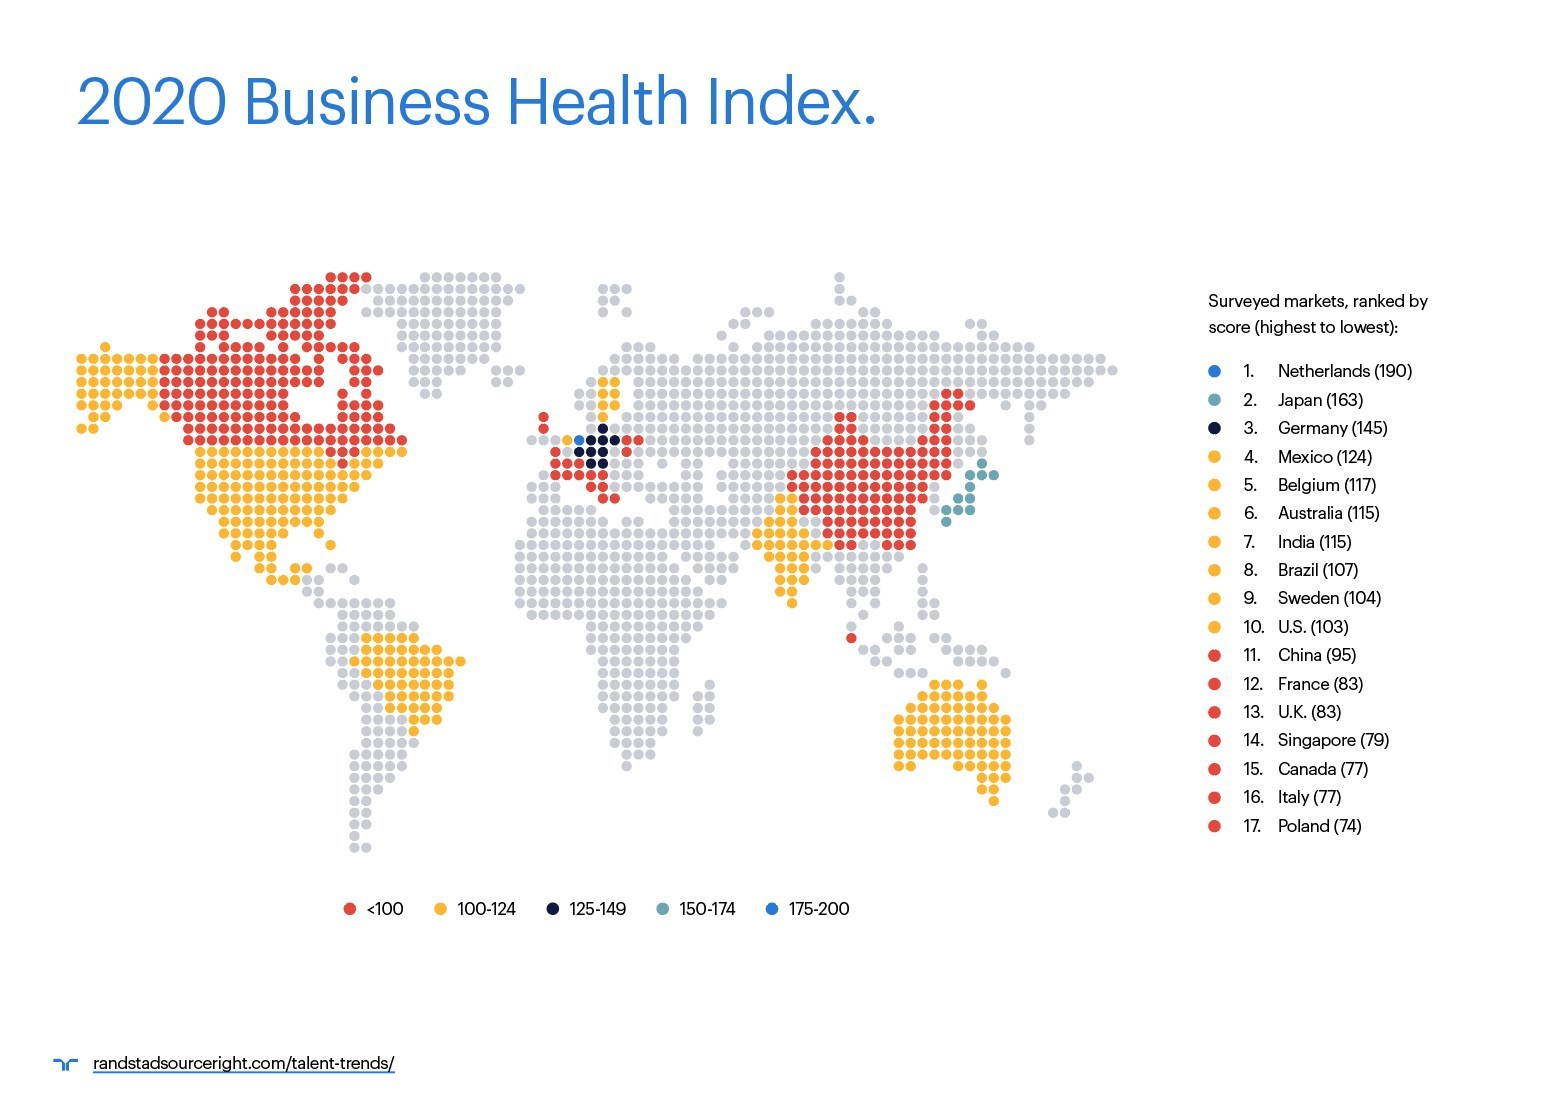 Randstad Sourceright 2020 Business Health Index rankings